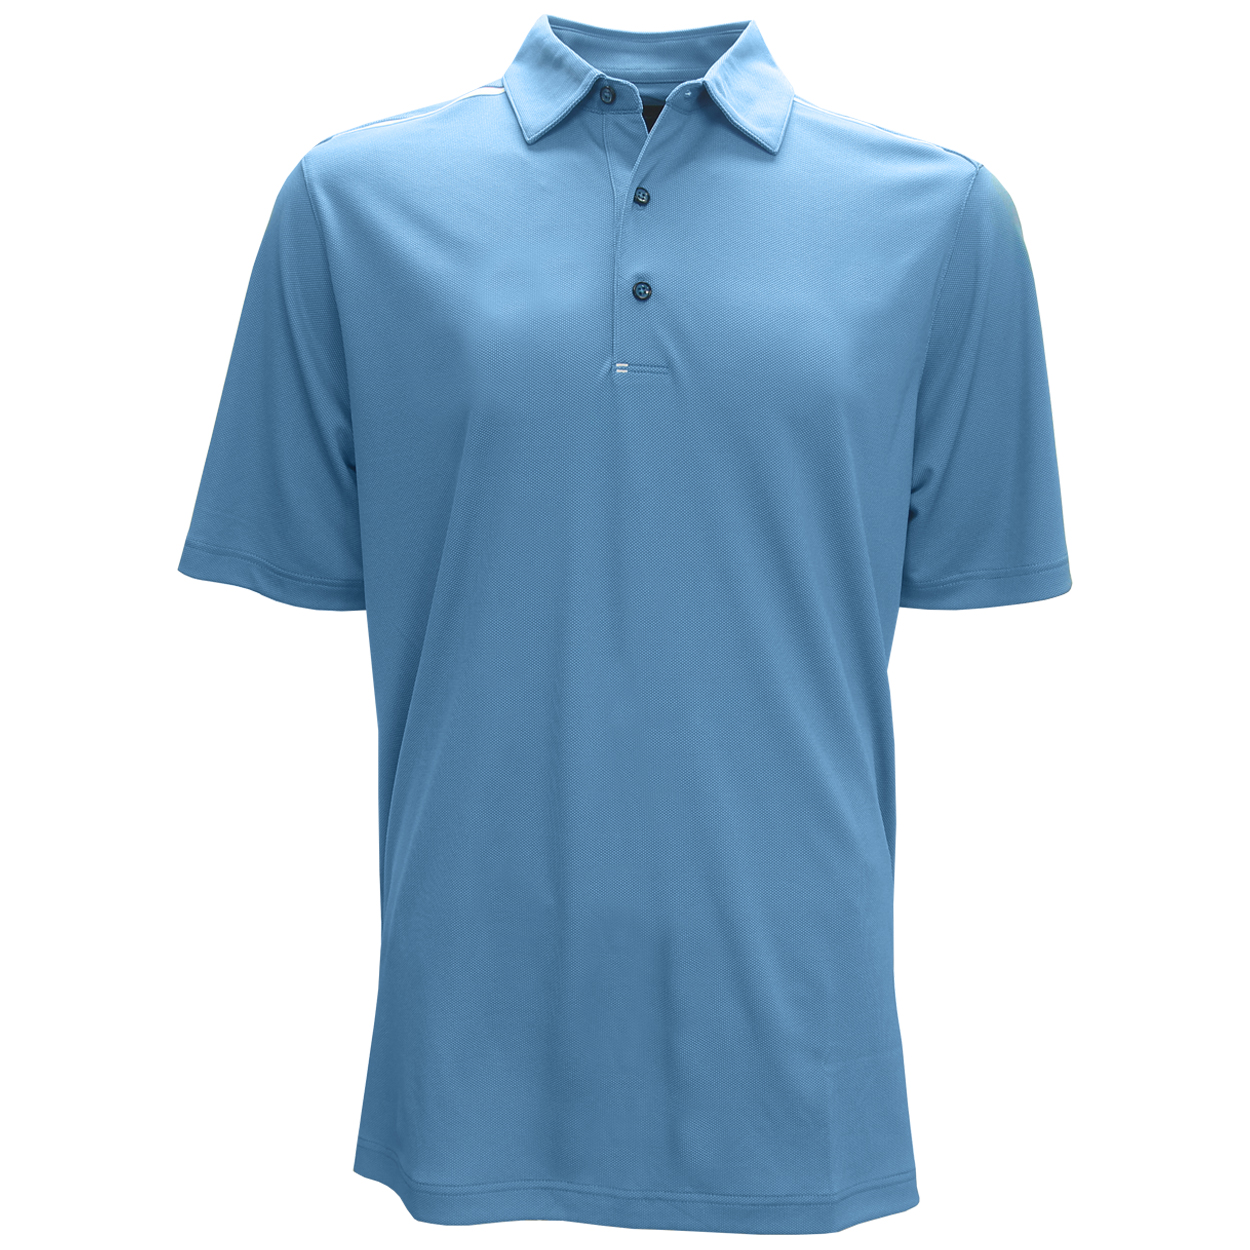 Greg Norman Men'S Offshore Polo Shirt *Closeout*